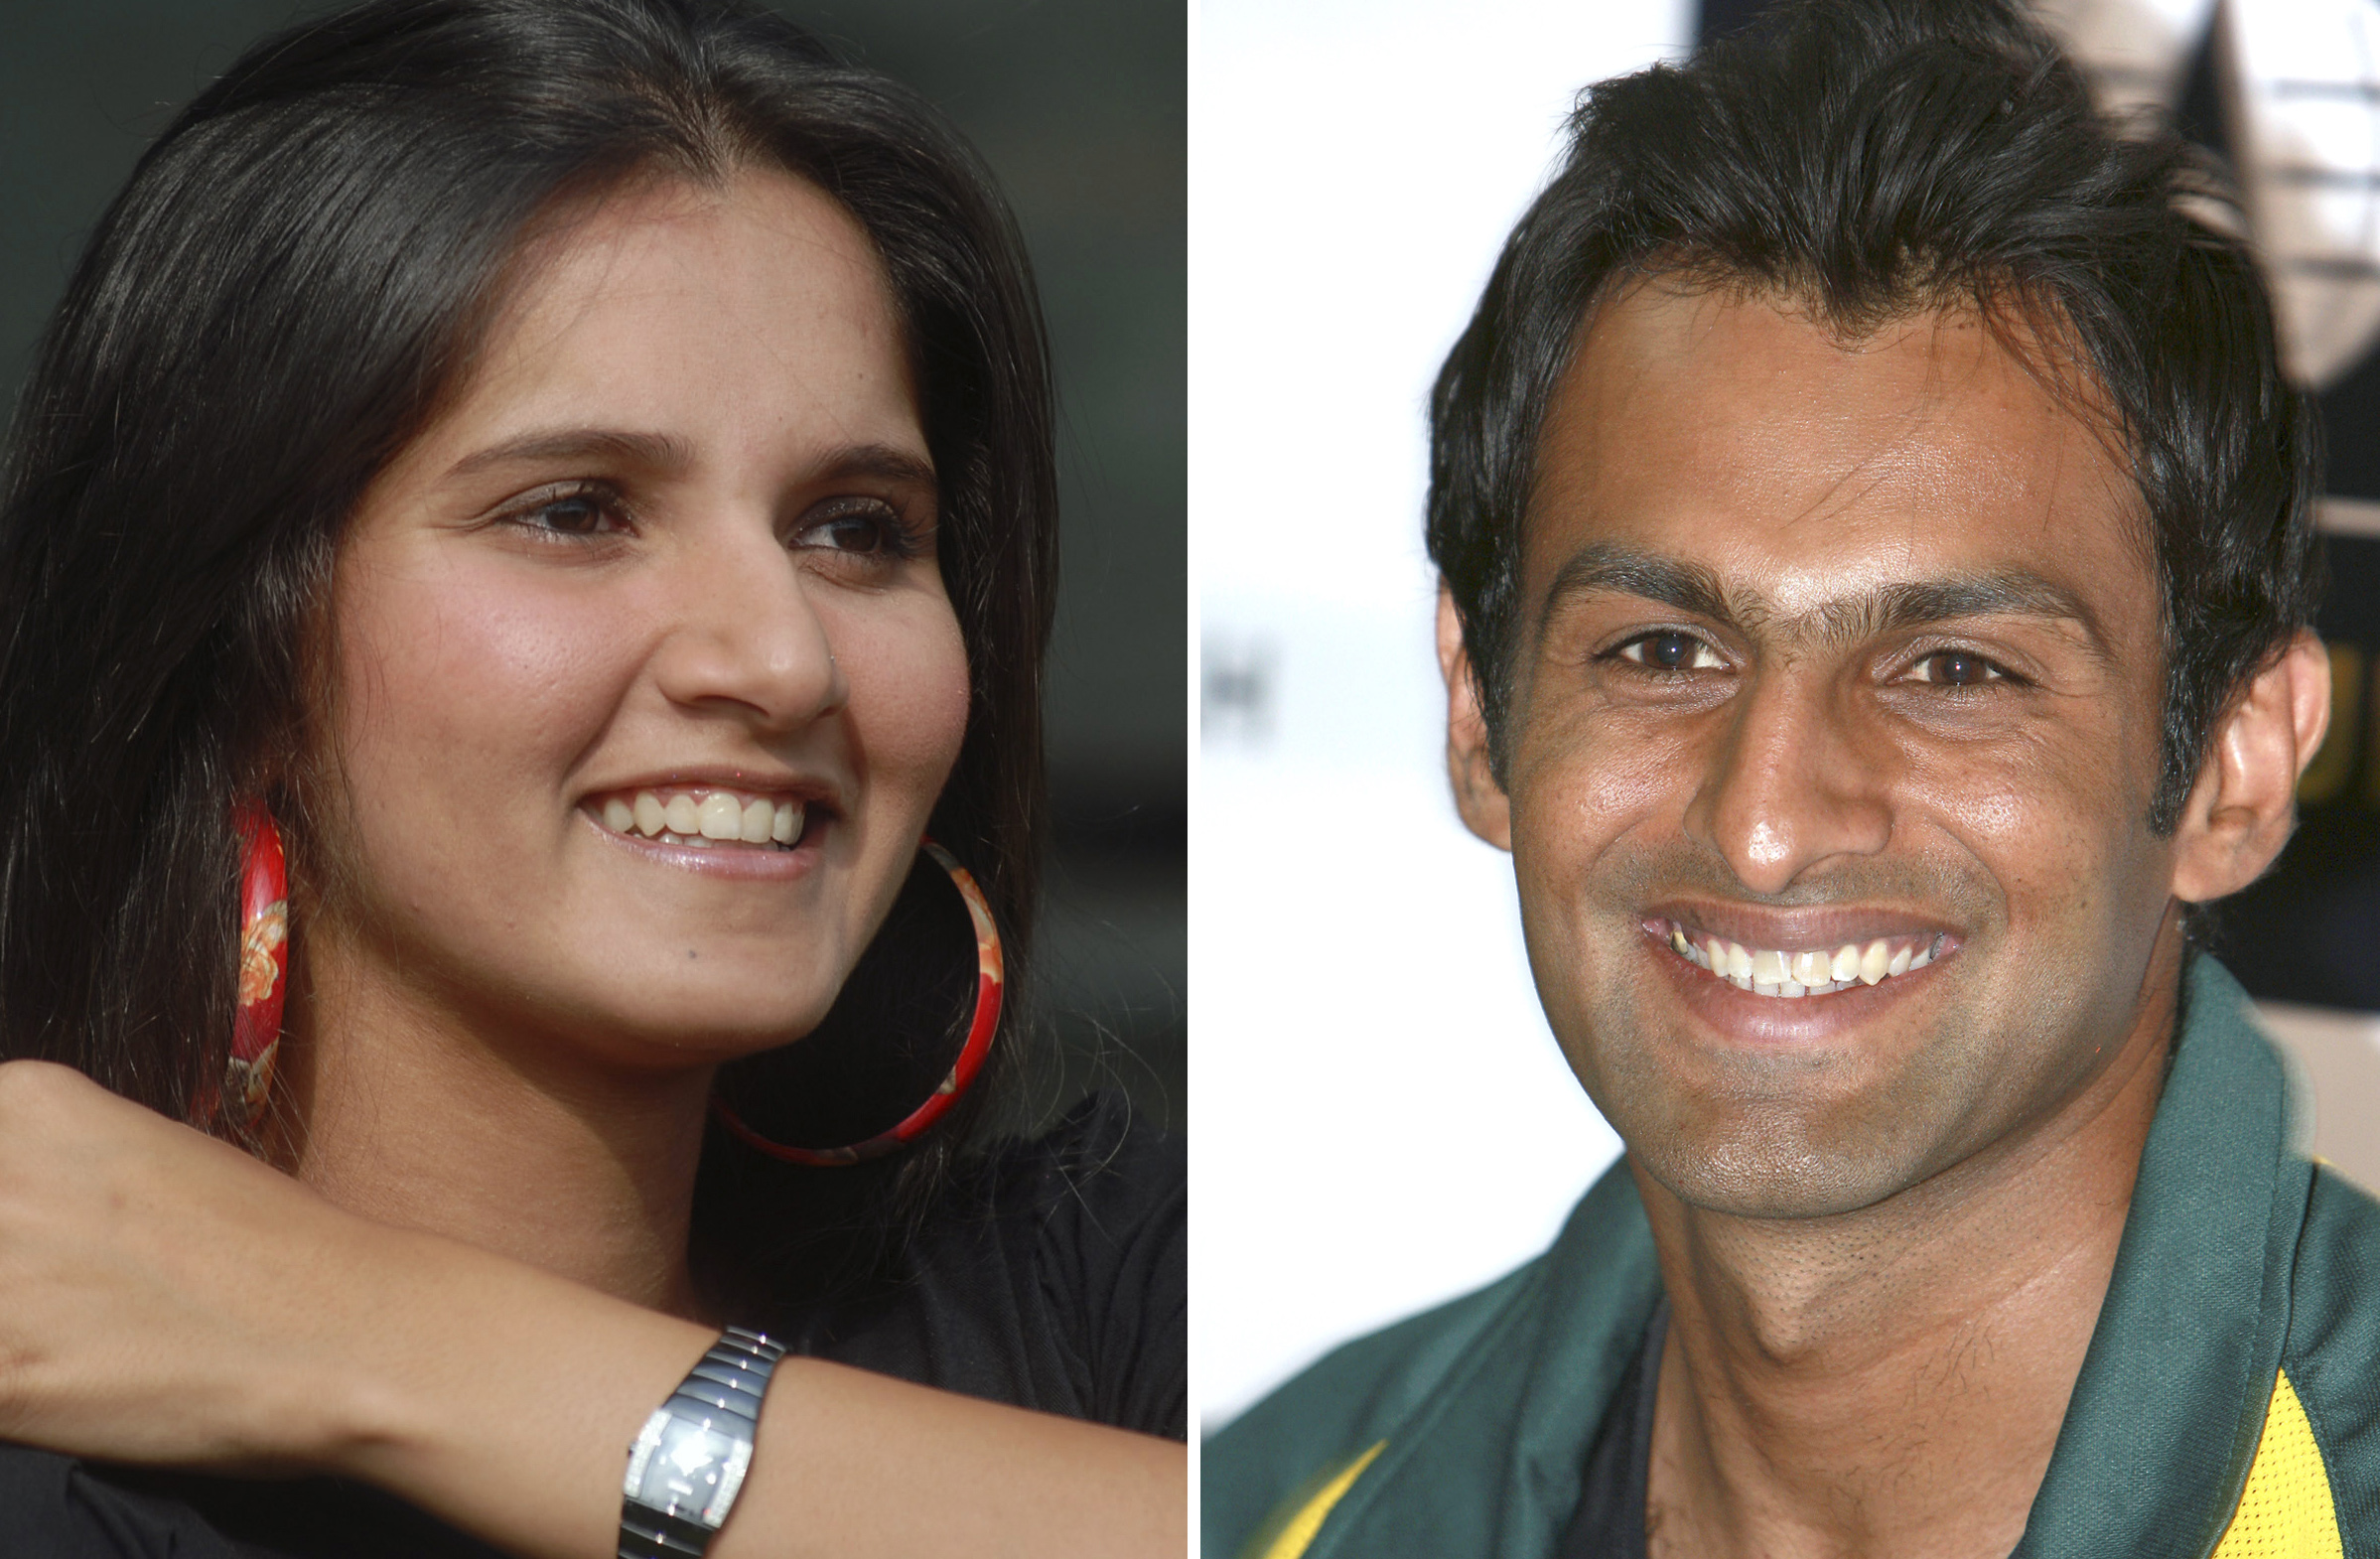 In this combination of two file photos, Indian tennis player Sania Mirza at a press conference in Hyderabad, India, on Feb. 4, 2008, left, and Pakista...